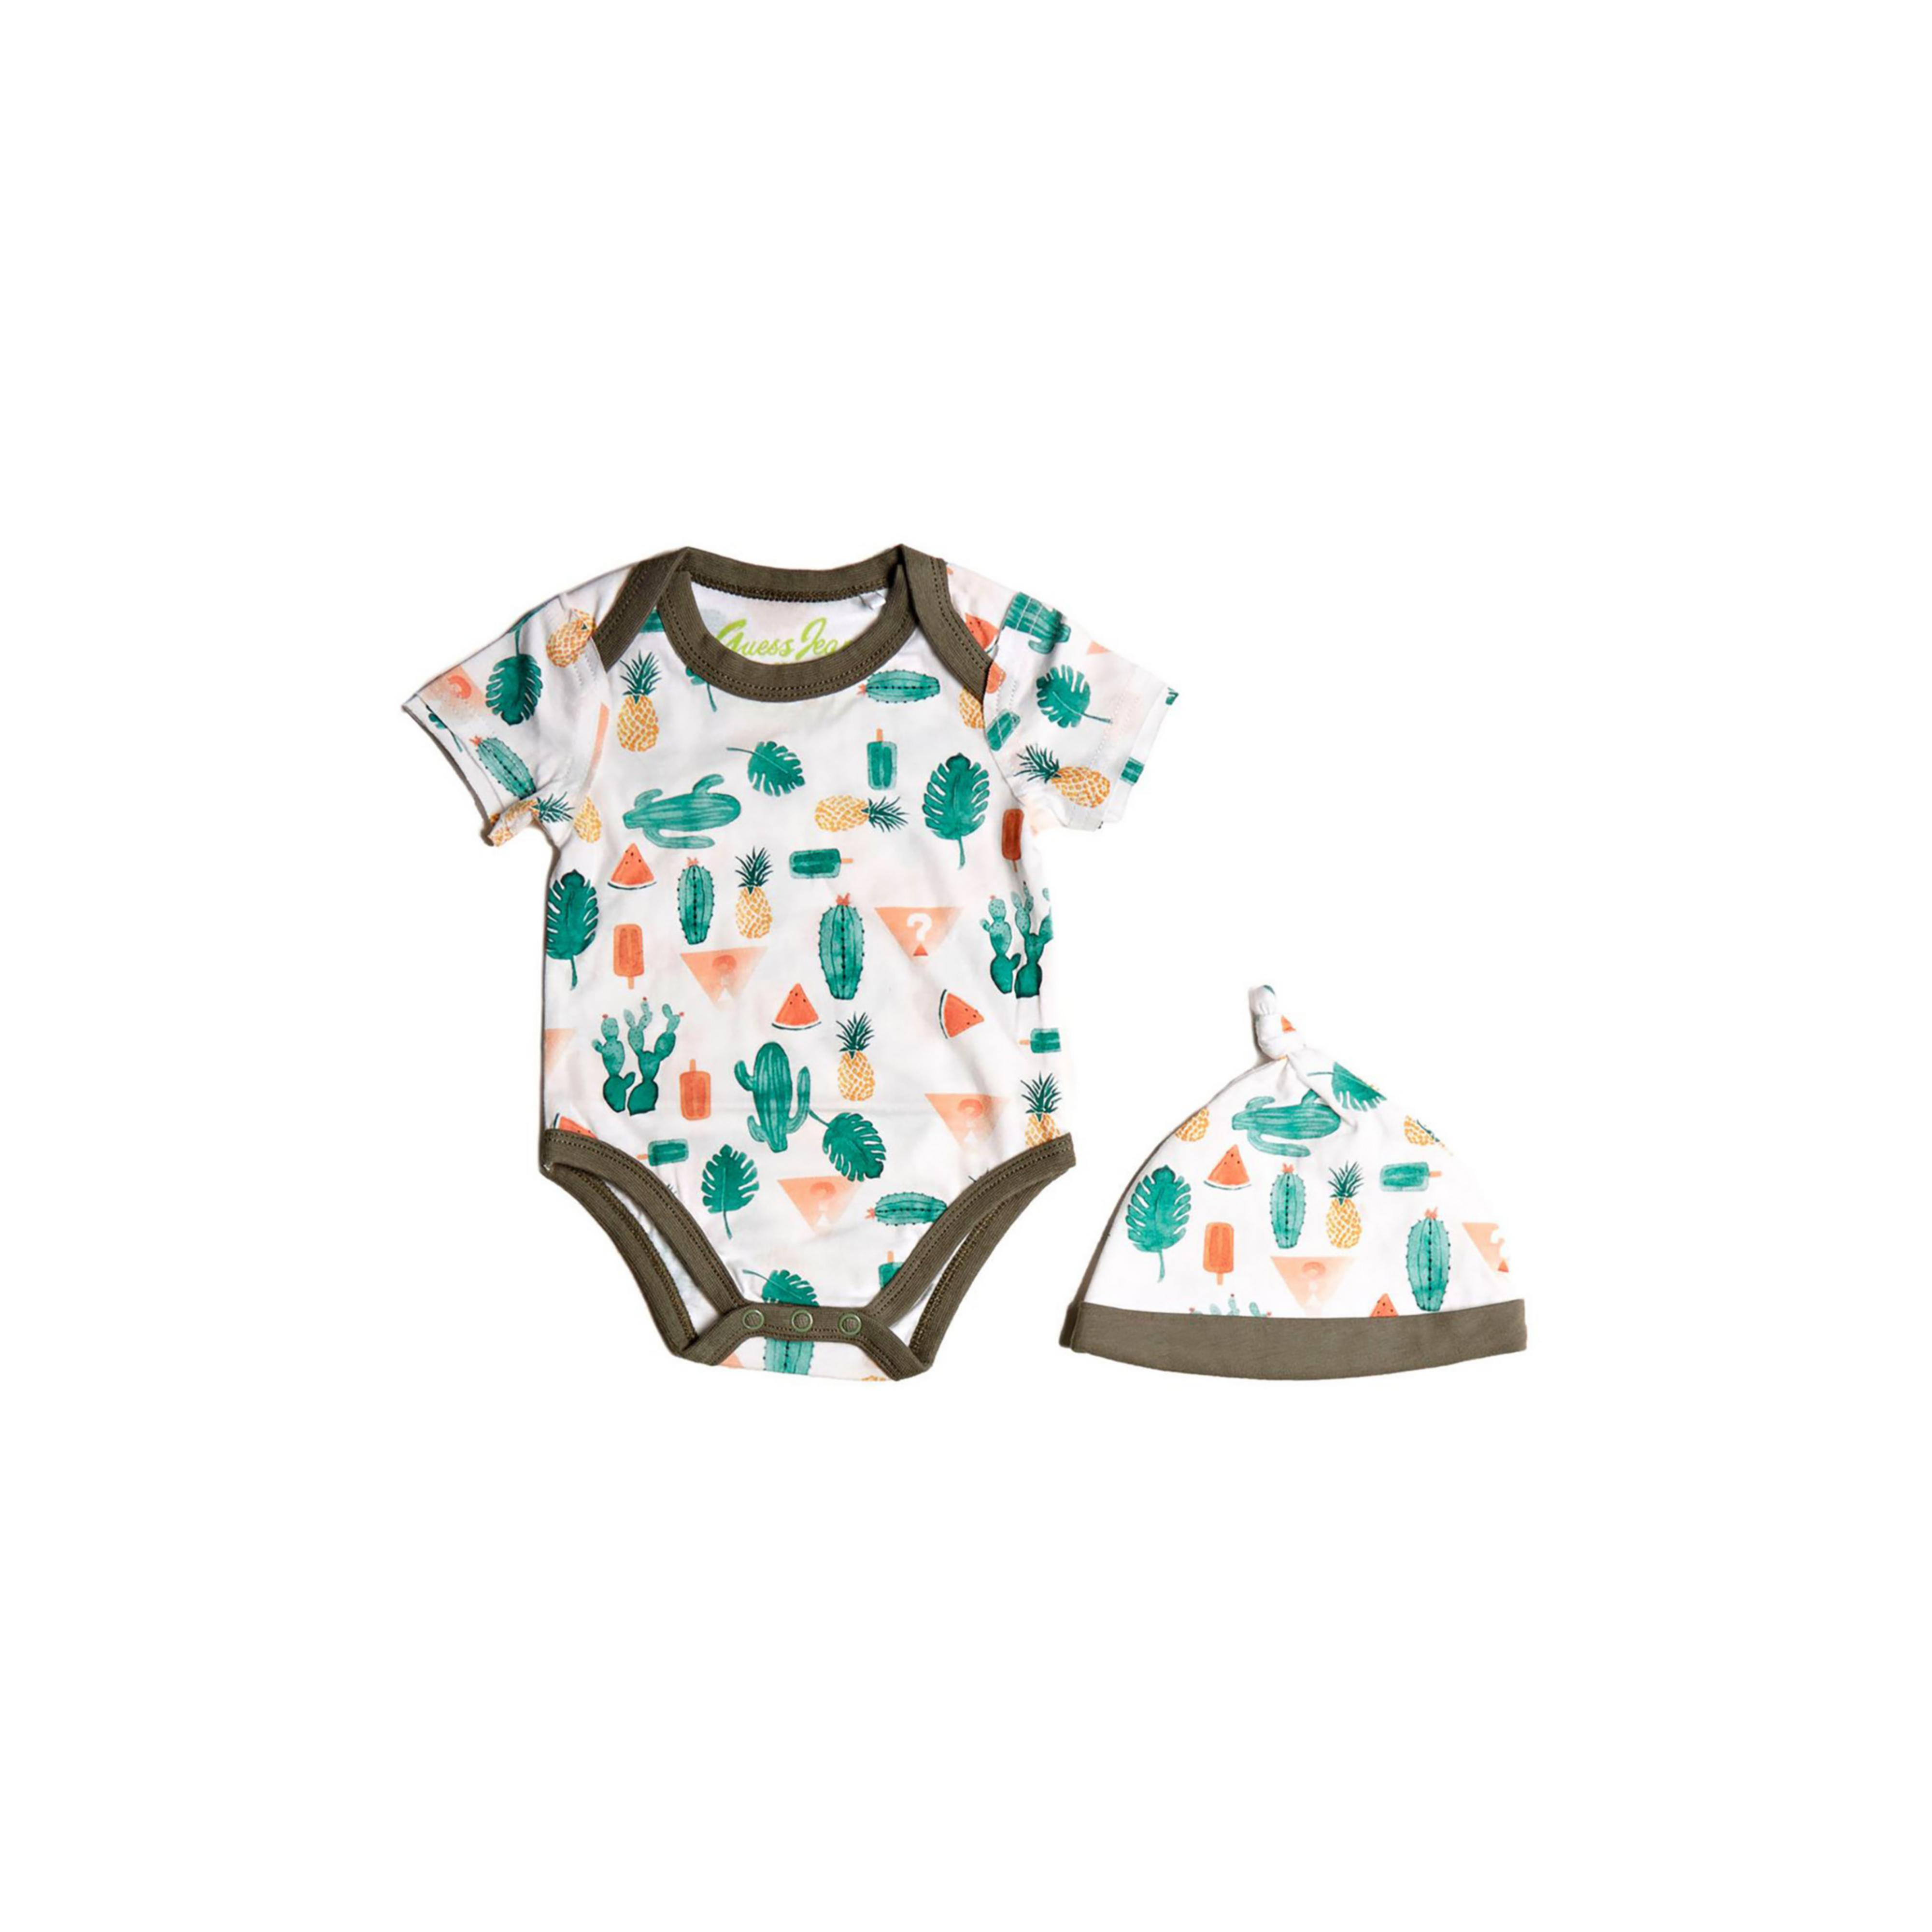 BODYSUITS & SETS - Bodysuits Guess Outlet Sneakernews Clearance Brand New Unisex N5LvO06a